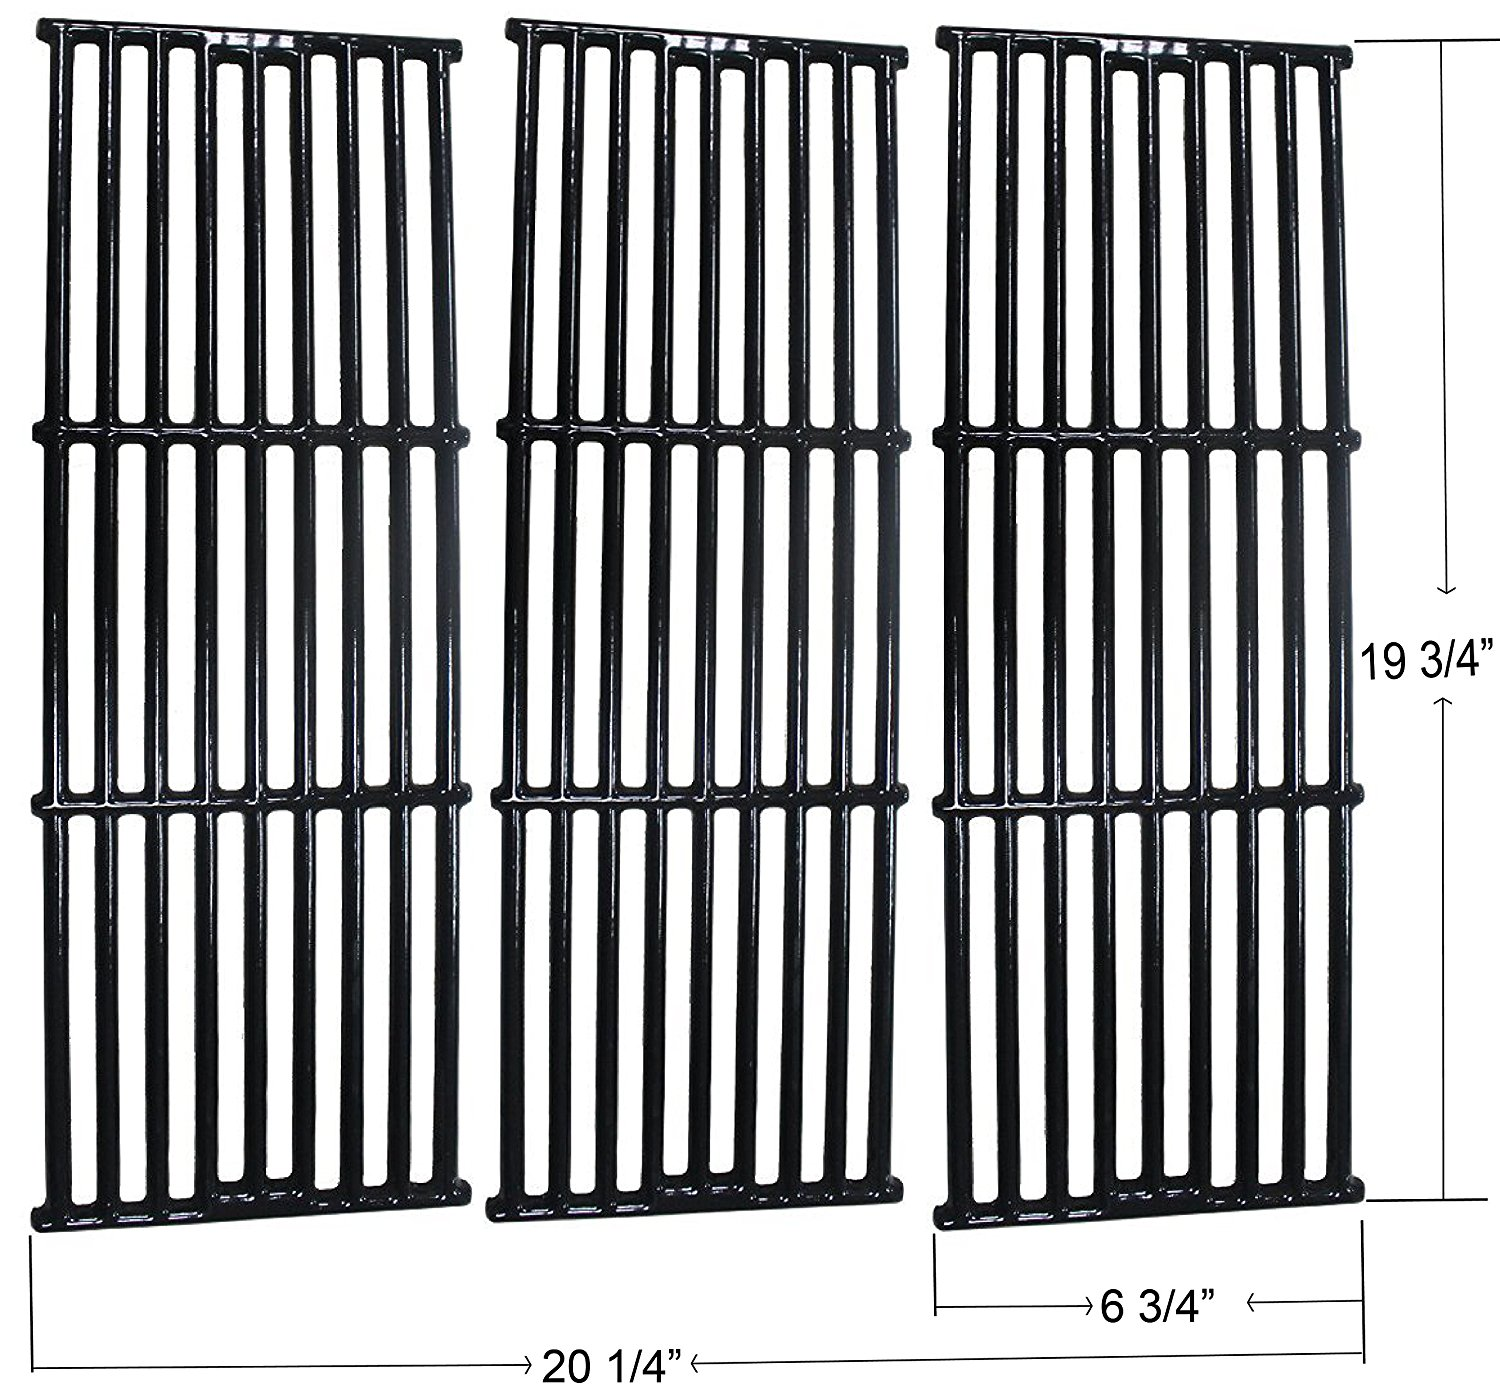 """Porcelain Enamel Cast Iron Cooking Grid For Chargriller 2121, 2123, 2222, 2828, 3001, 3008, 3030, 3725, 4000, 5050, 5252, King Griller Grills (Dims: 19 3/4 X 6 3/4"""" Each; 19 3/4 X 20 1/4"""" For 3 Units)"""